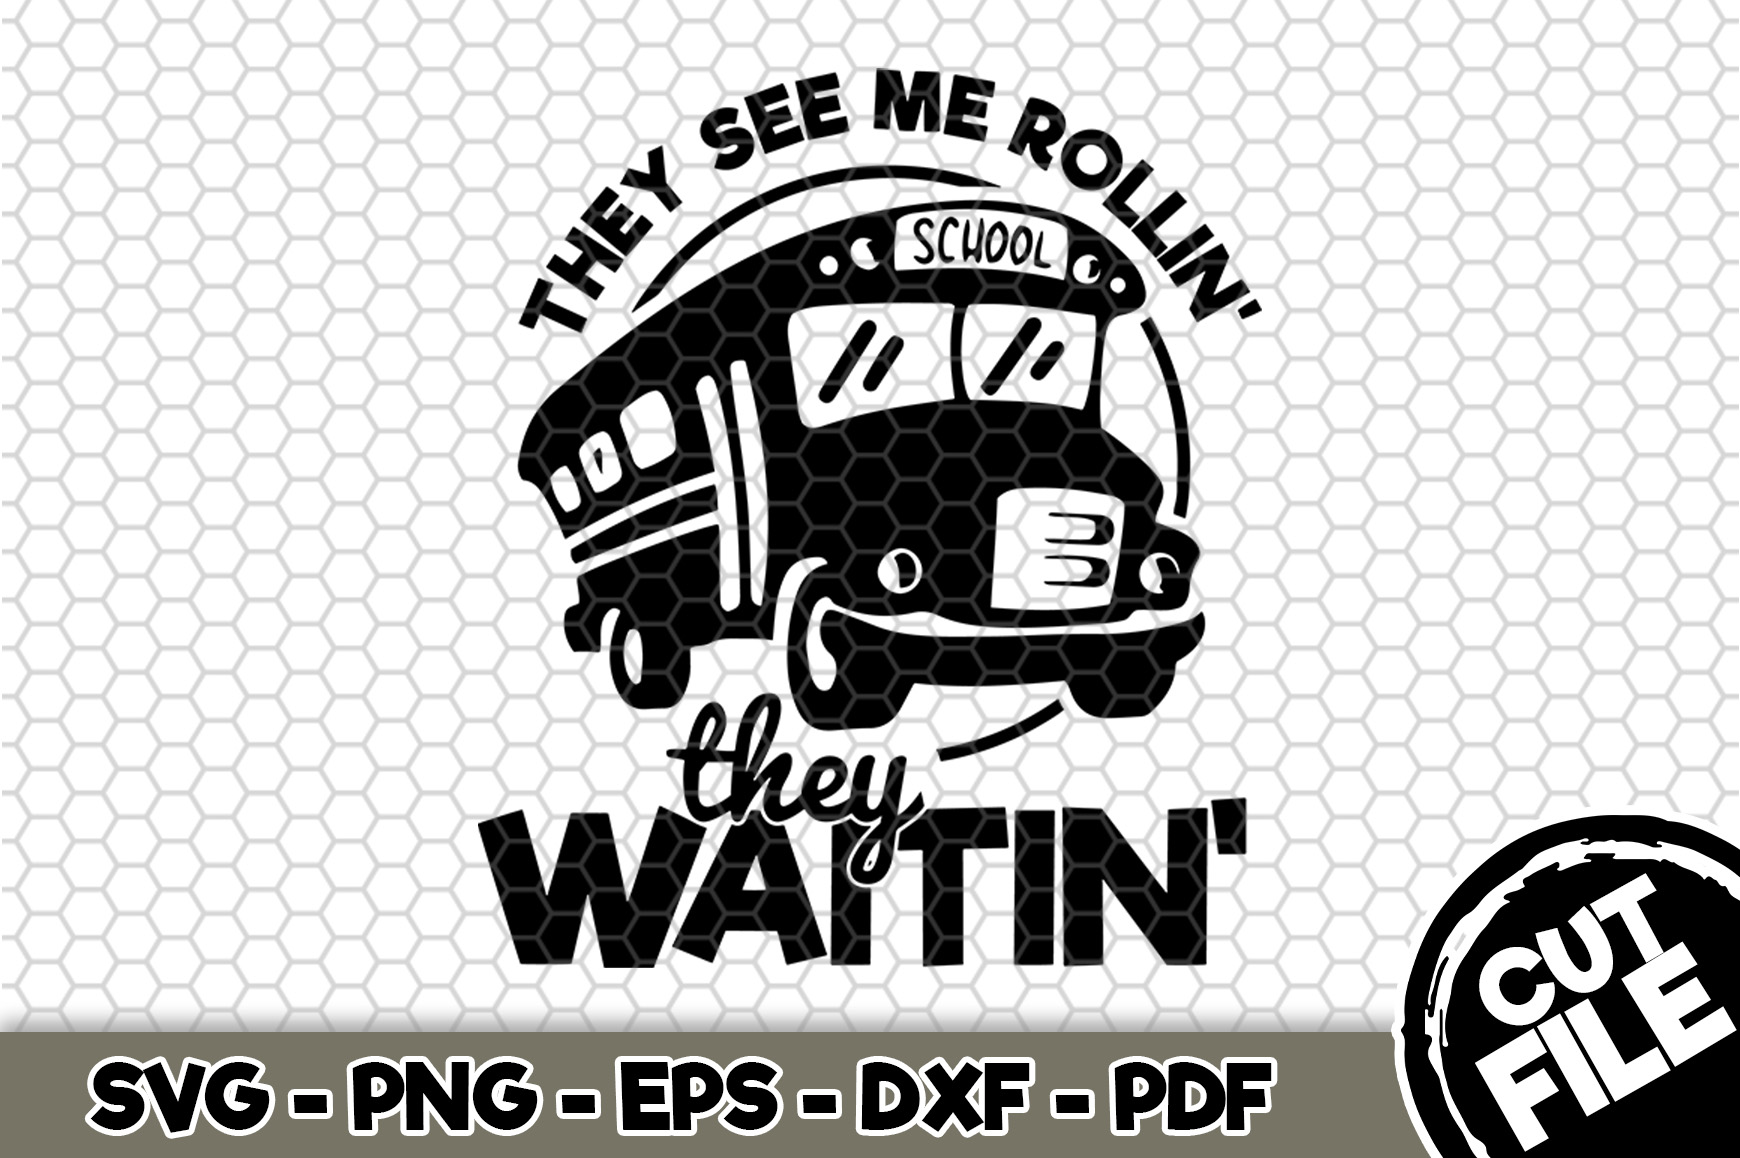 Download Free They See Me Rollin They Waitin Graphic By Svgexpress for Cricut Explore, Silhouette and other cutting machines.